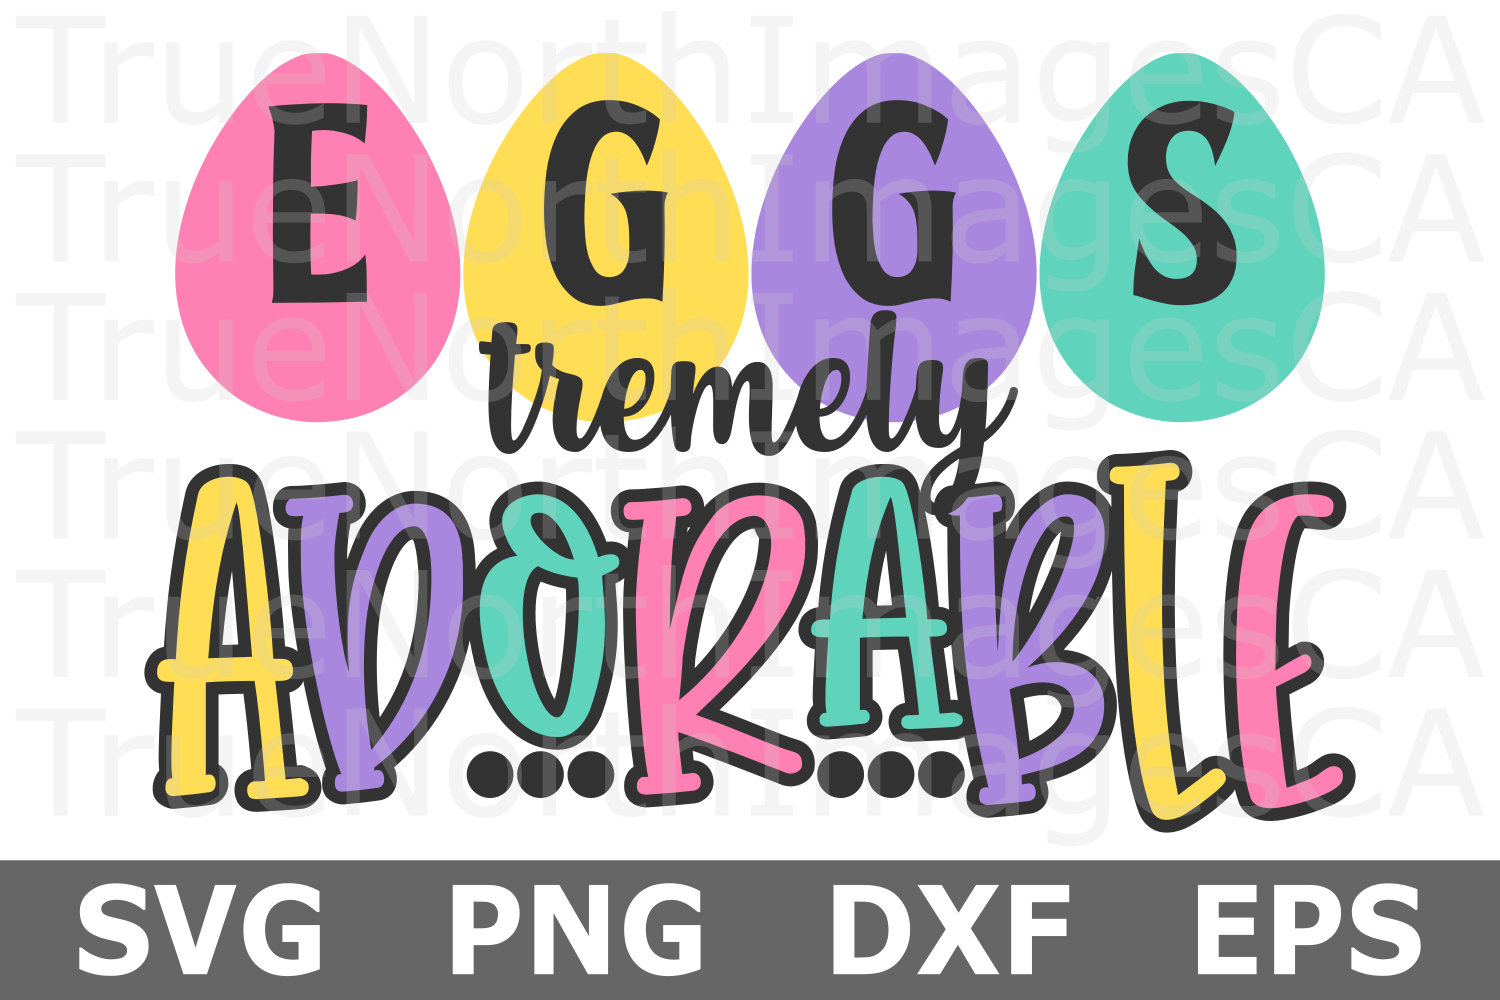 Eggs tremely Adorable - An Easter SVG Cut File example image 1